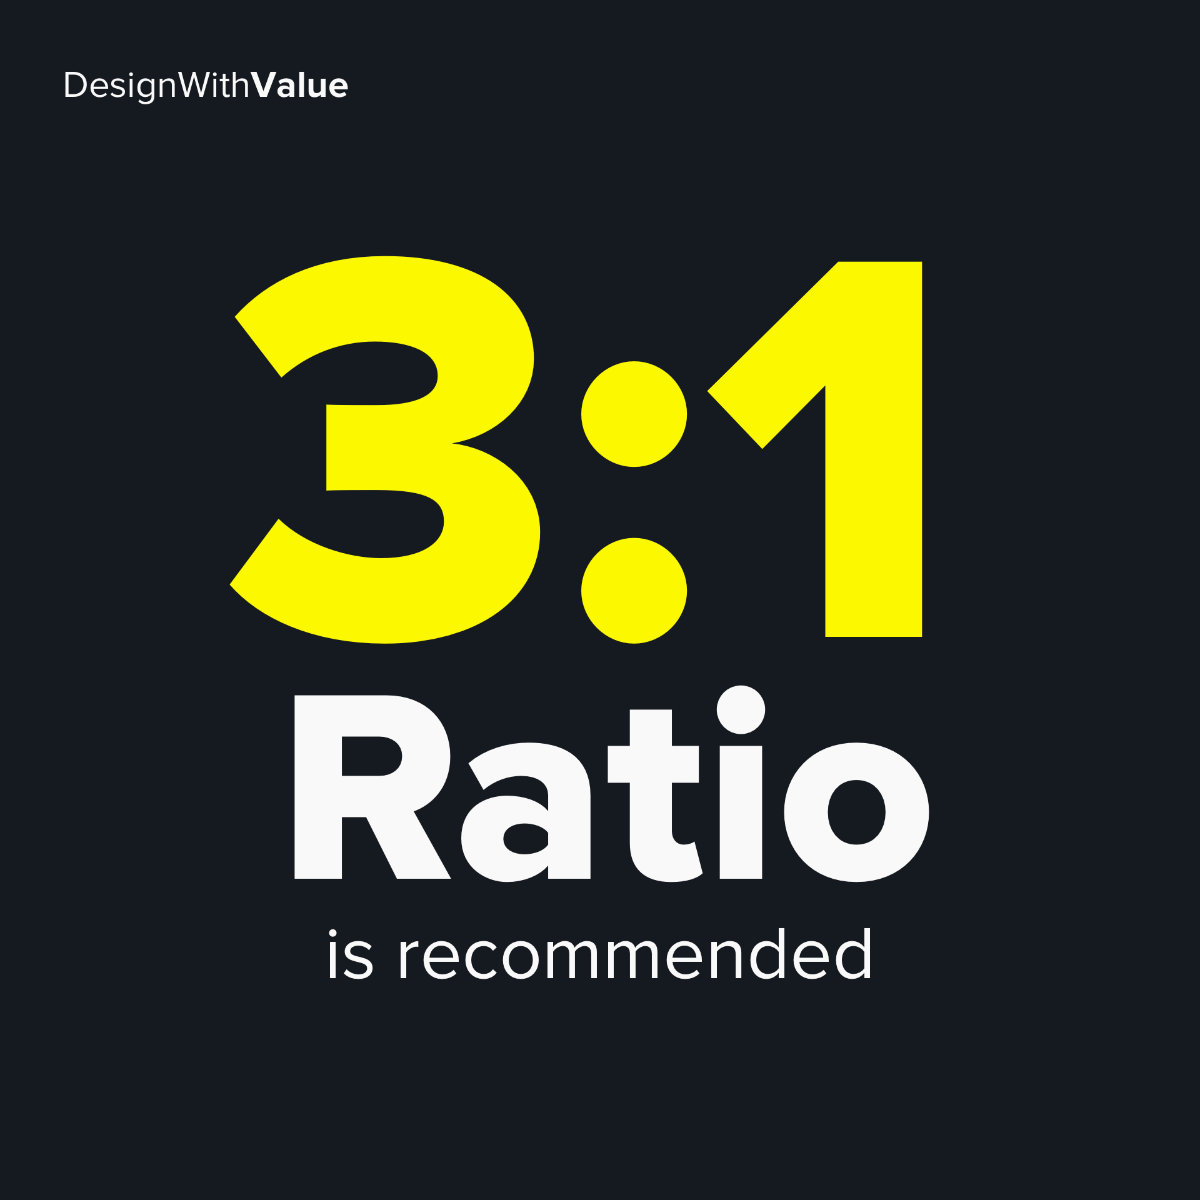 3:1 ratio is recommended